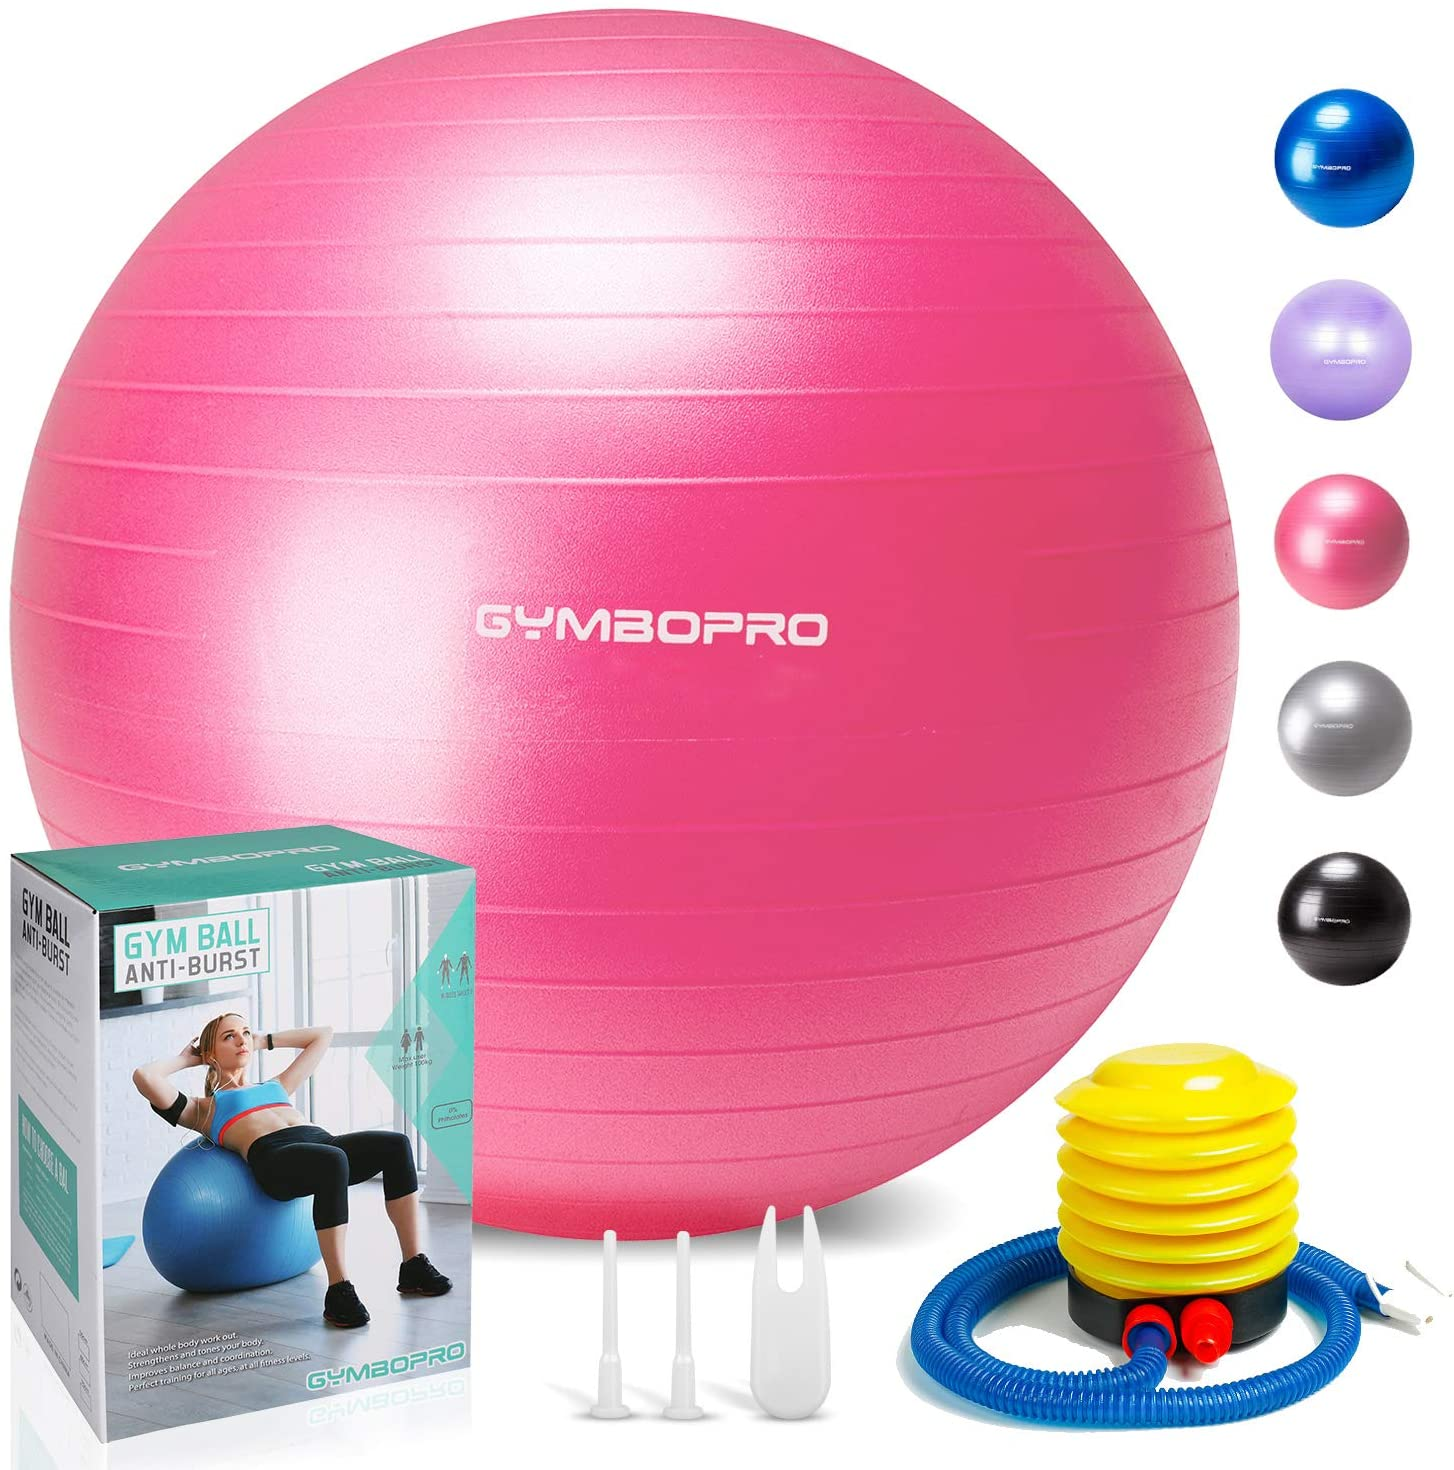 Gym Ball Gymbopro